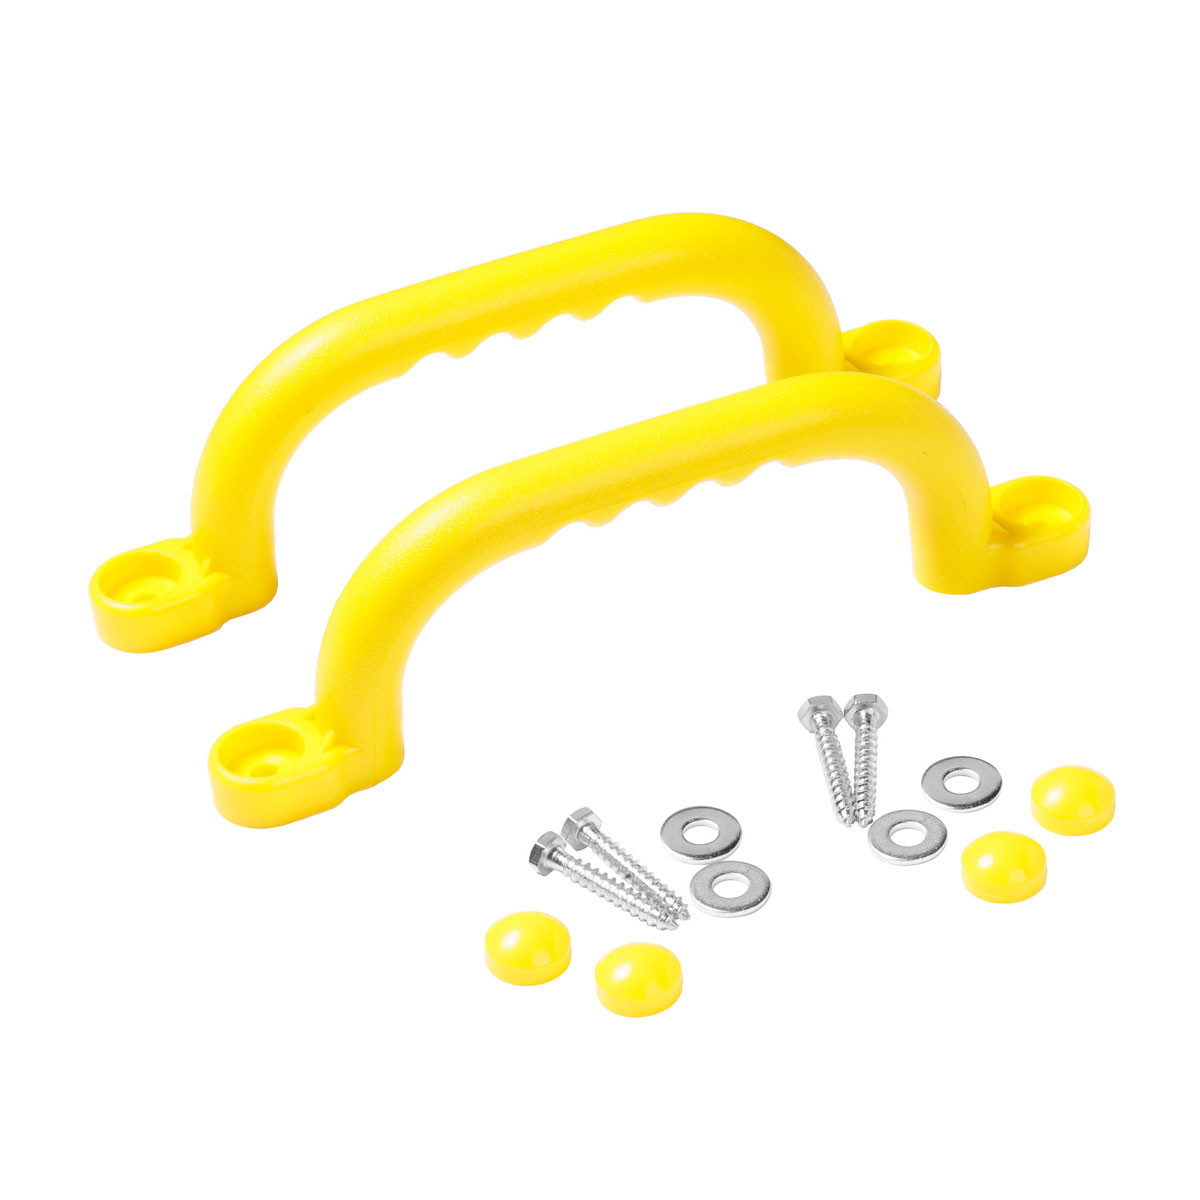 Hand Grip with Finger Ridges - HGR - Yellow